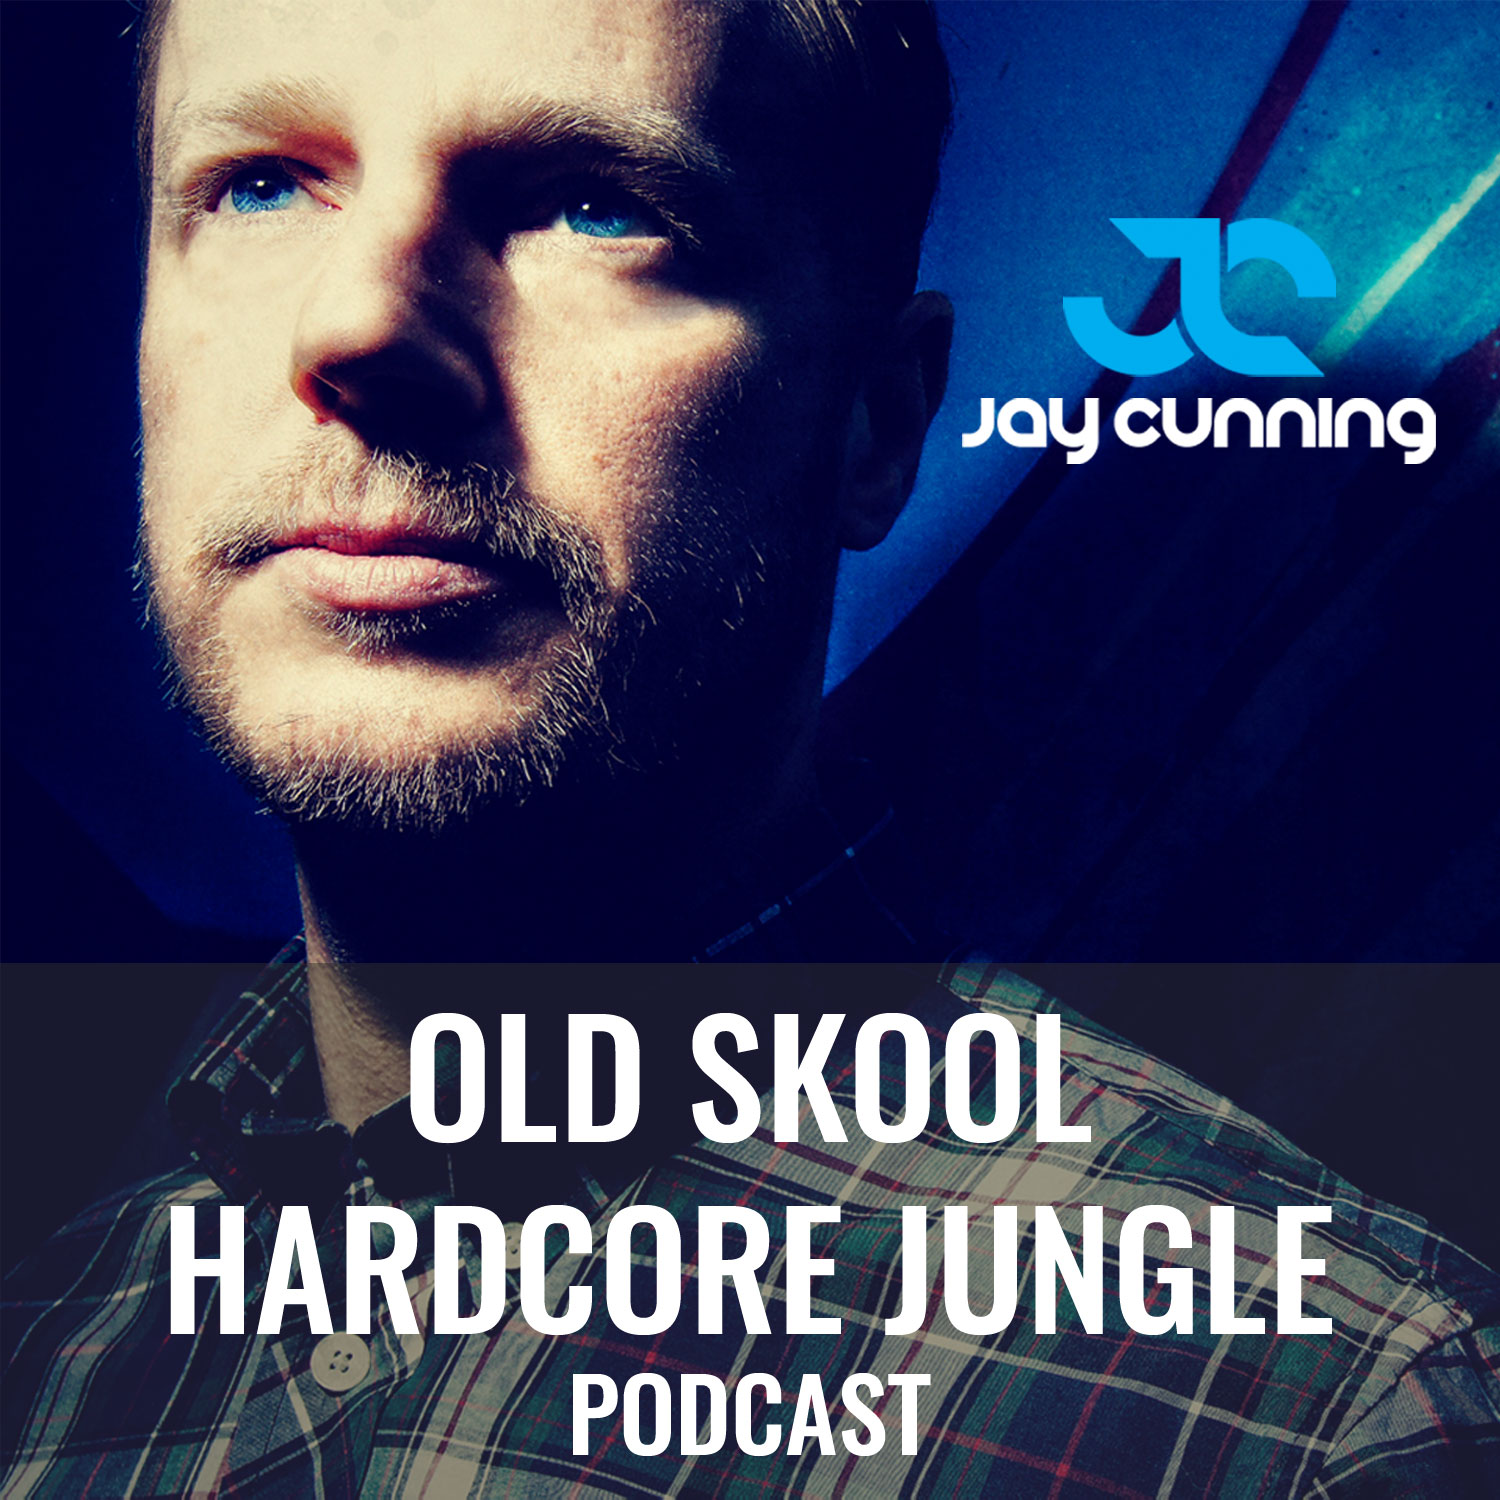 Jay Cunning Old Skool Hardcore Jungle Podcast